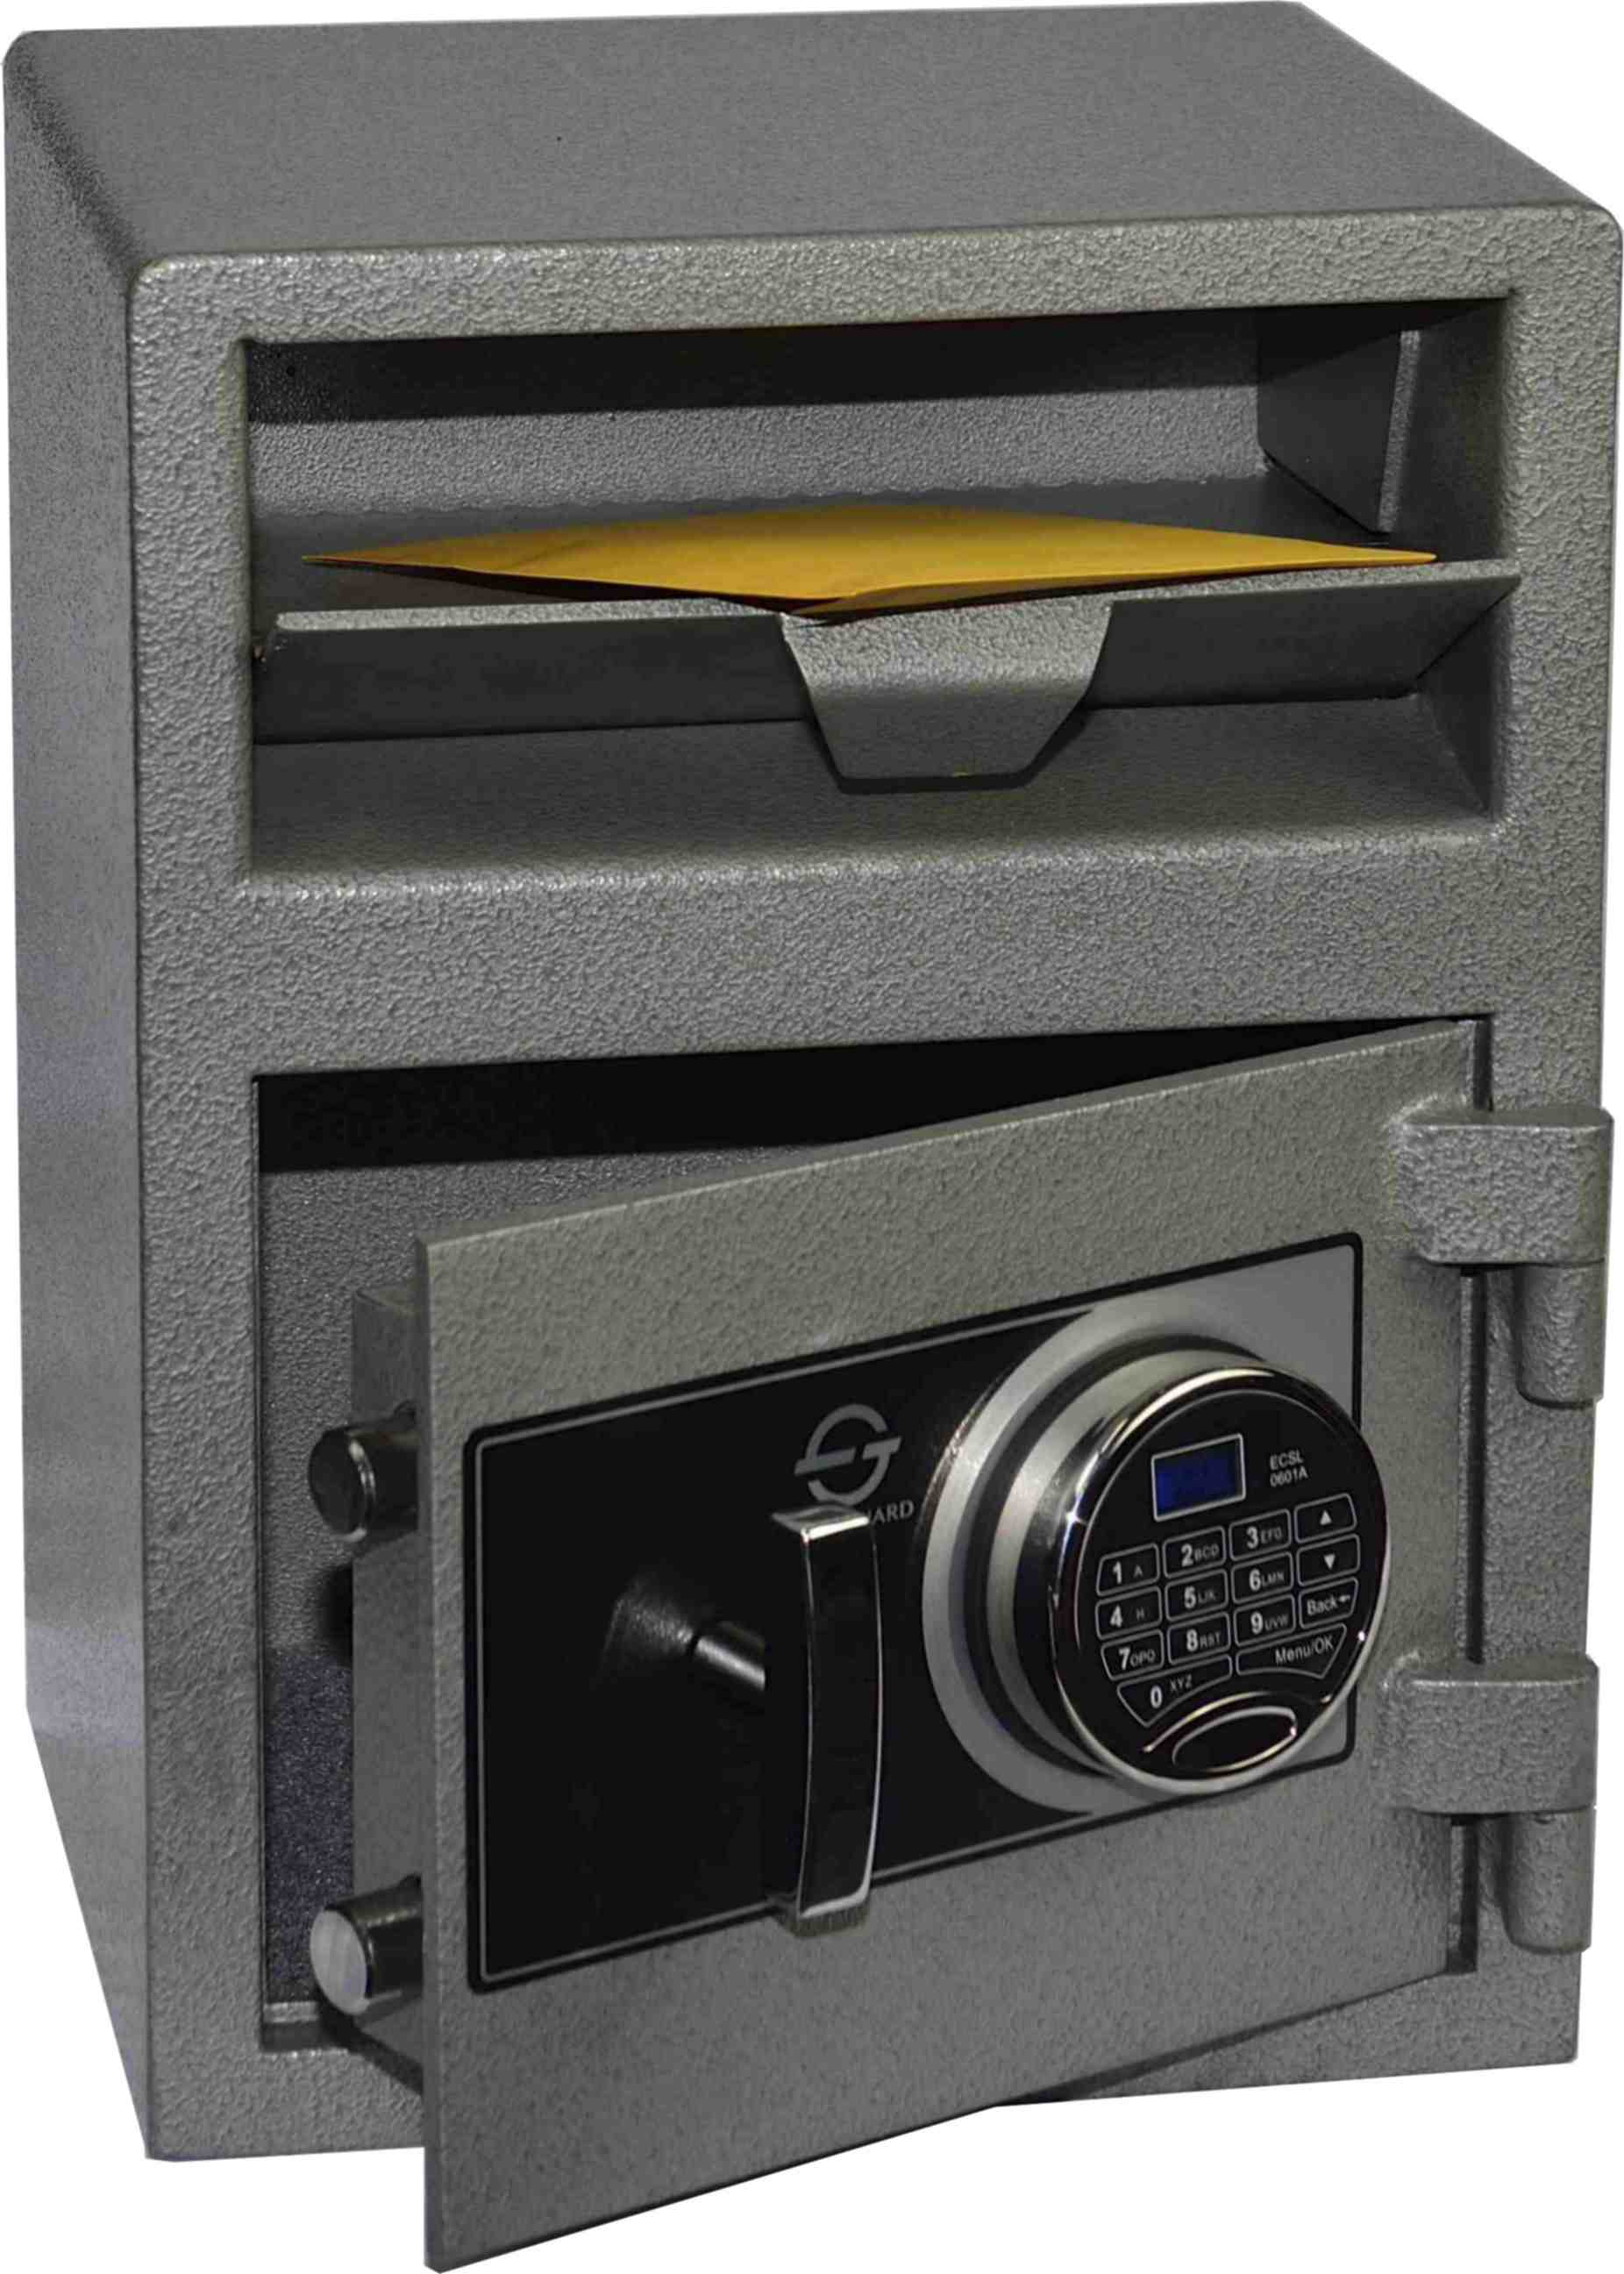 Secuguard AP-520SET Deposit Safes